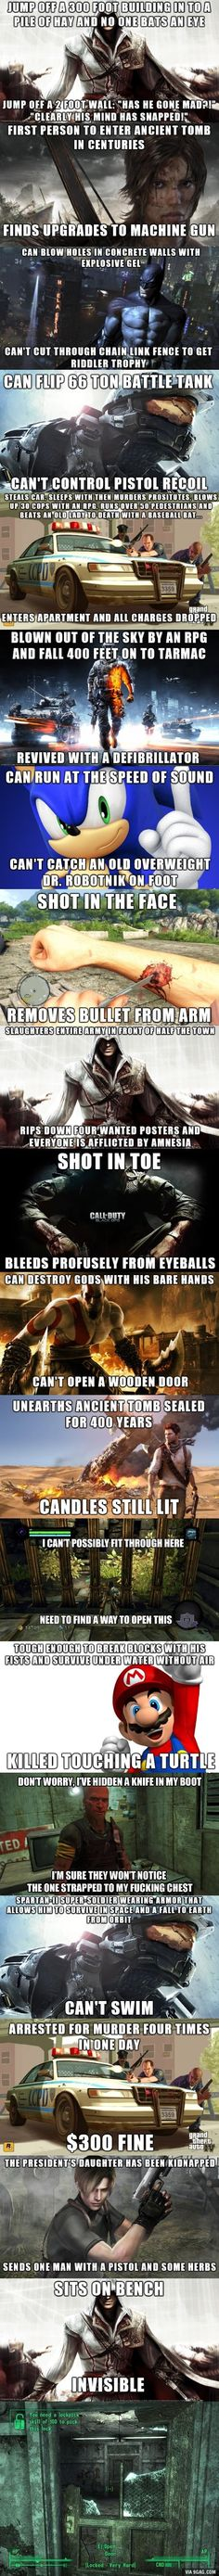 Video Game logic...